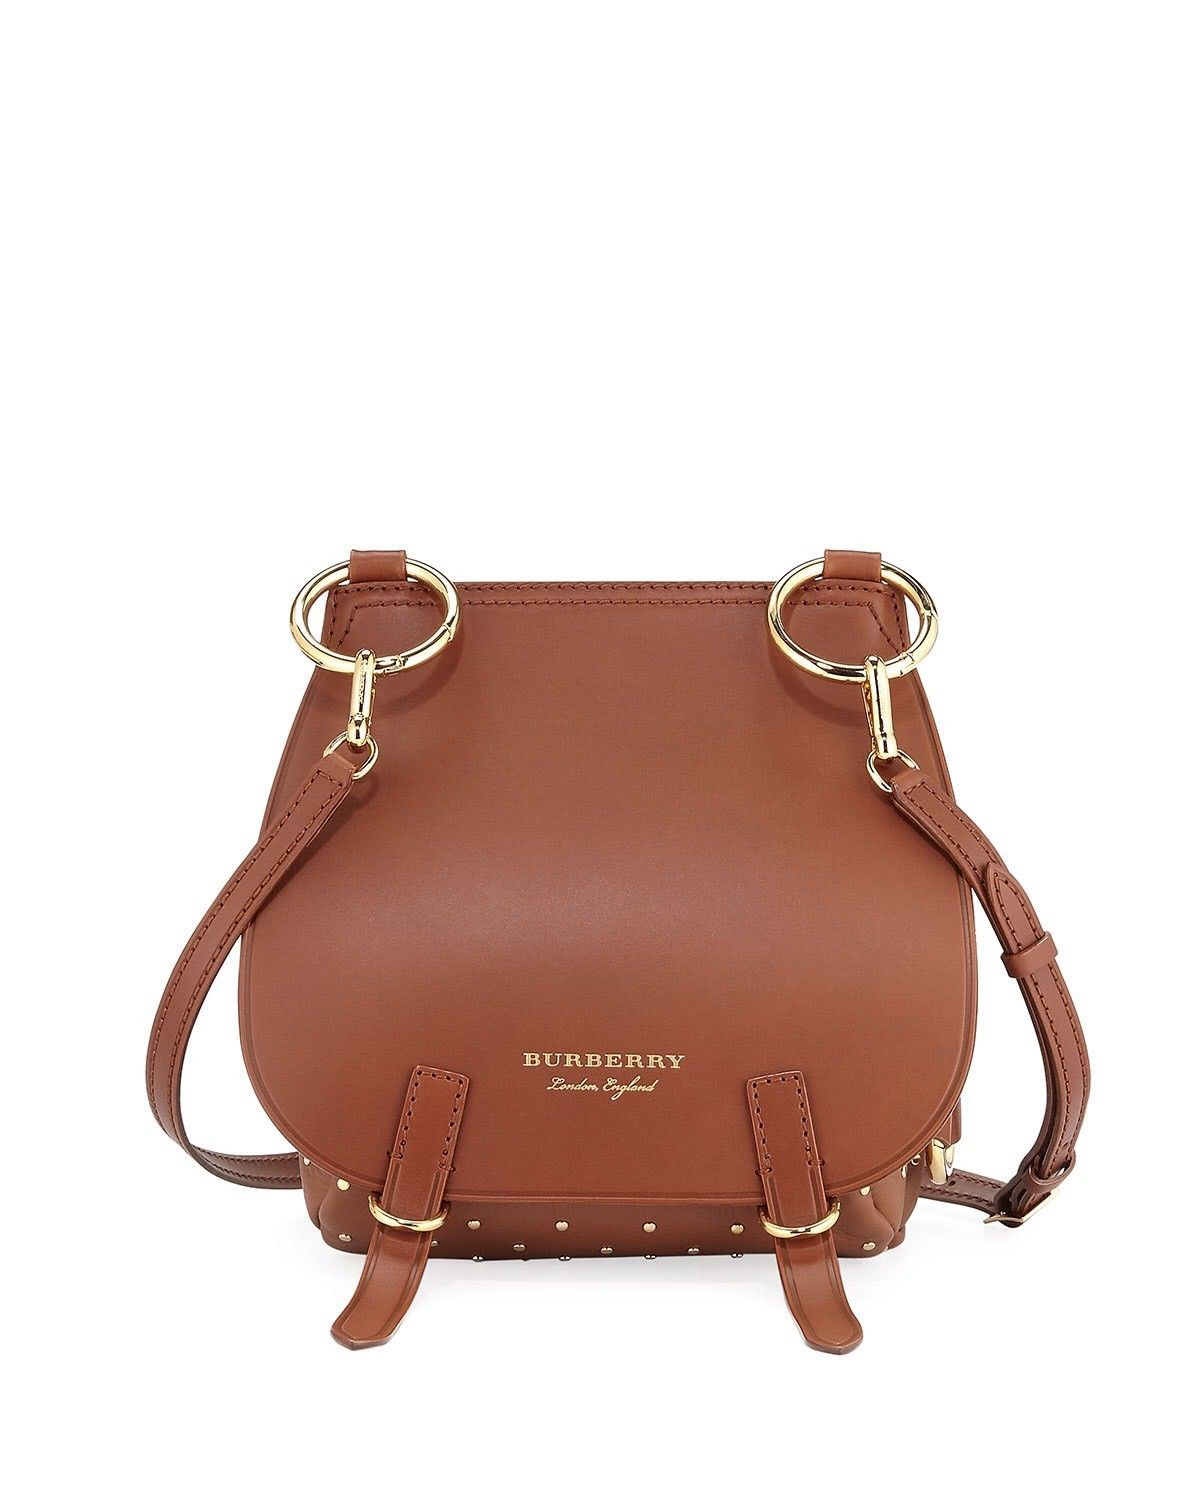 0891d33fd948 NWT Burberry Bridle Saddle Bag Tan Riveted Leather Gold Tone Hardware